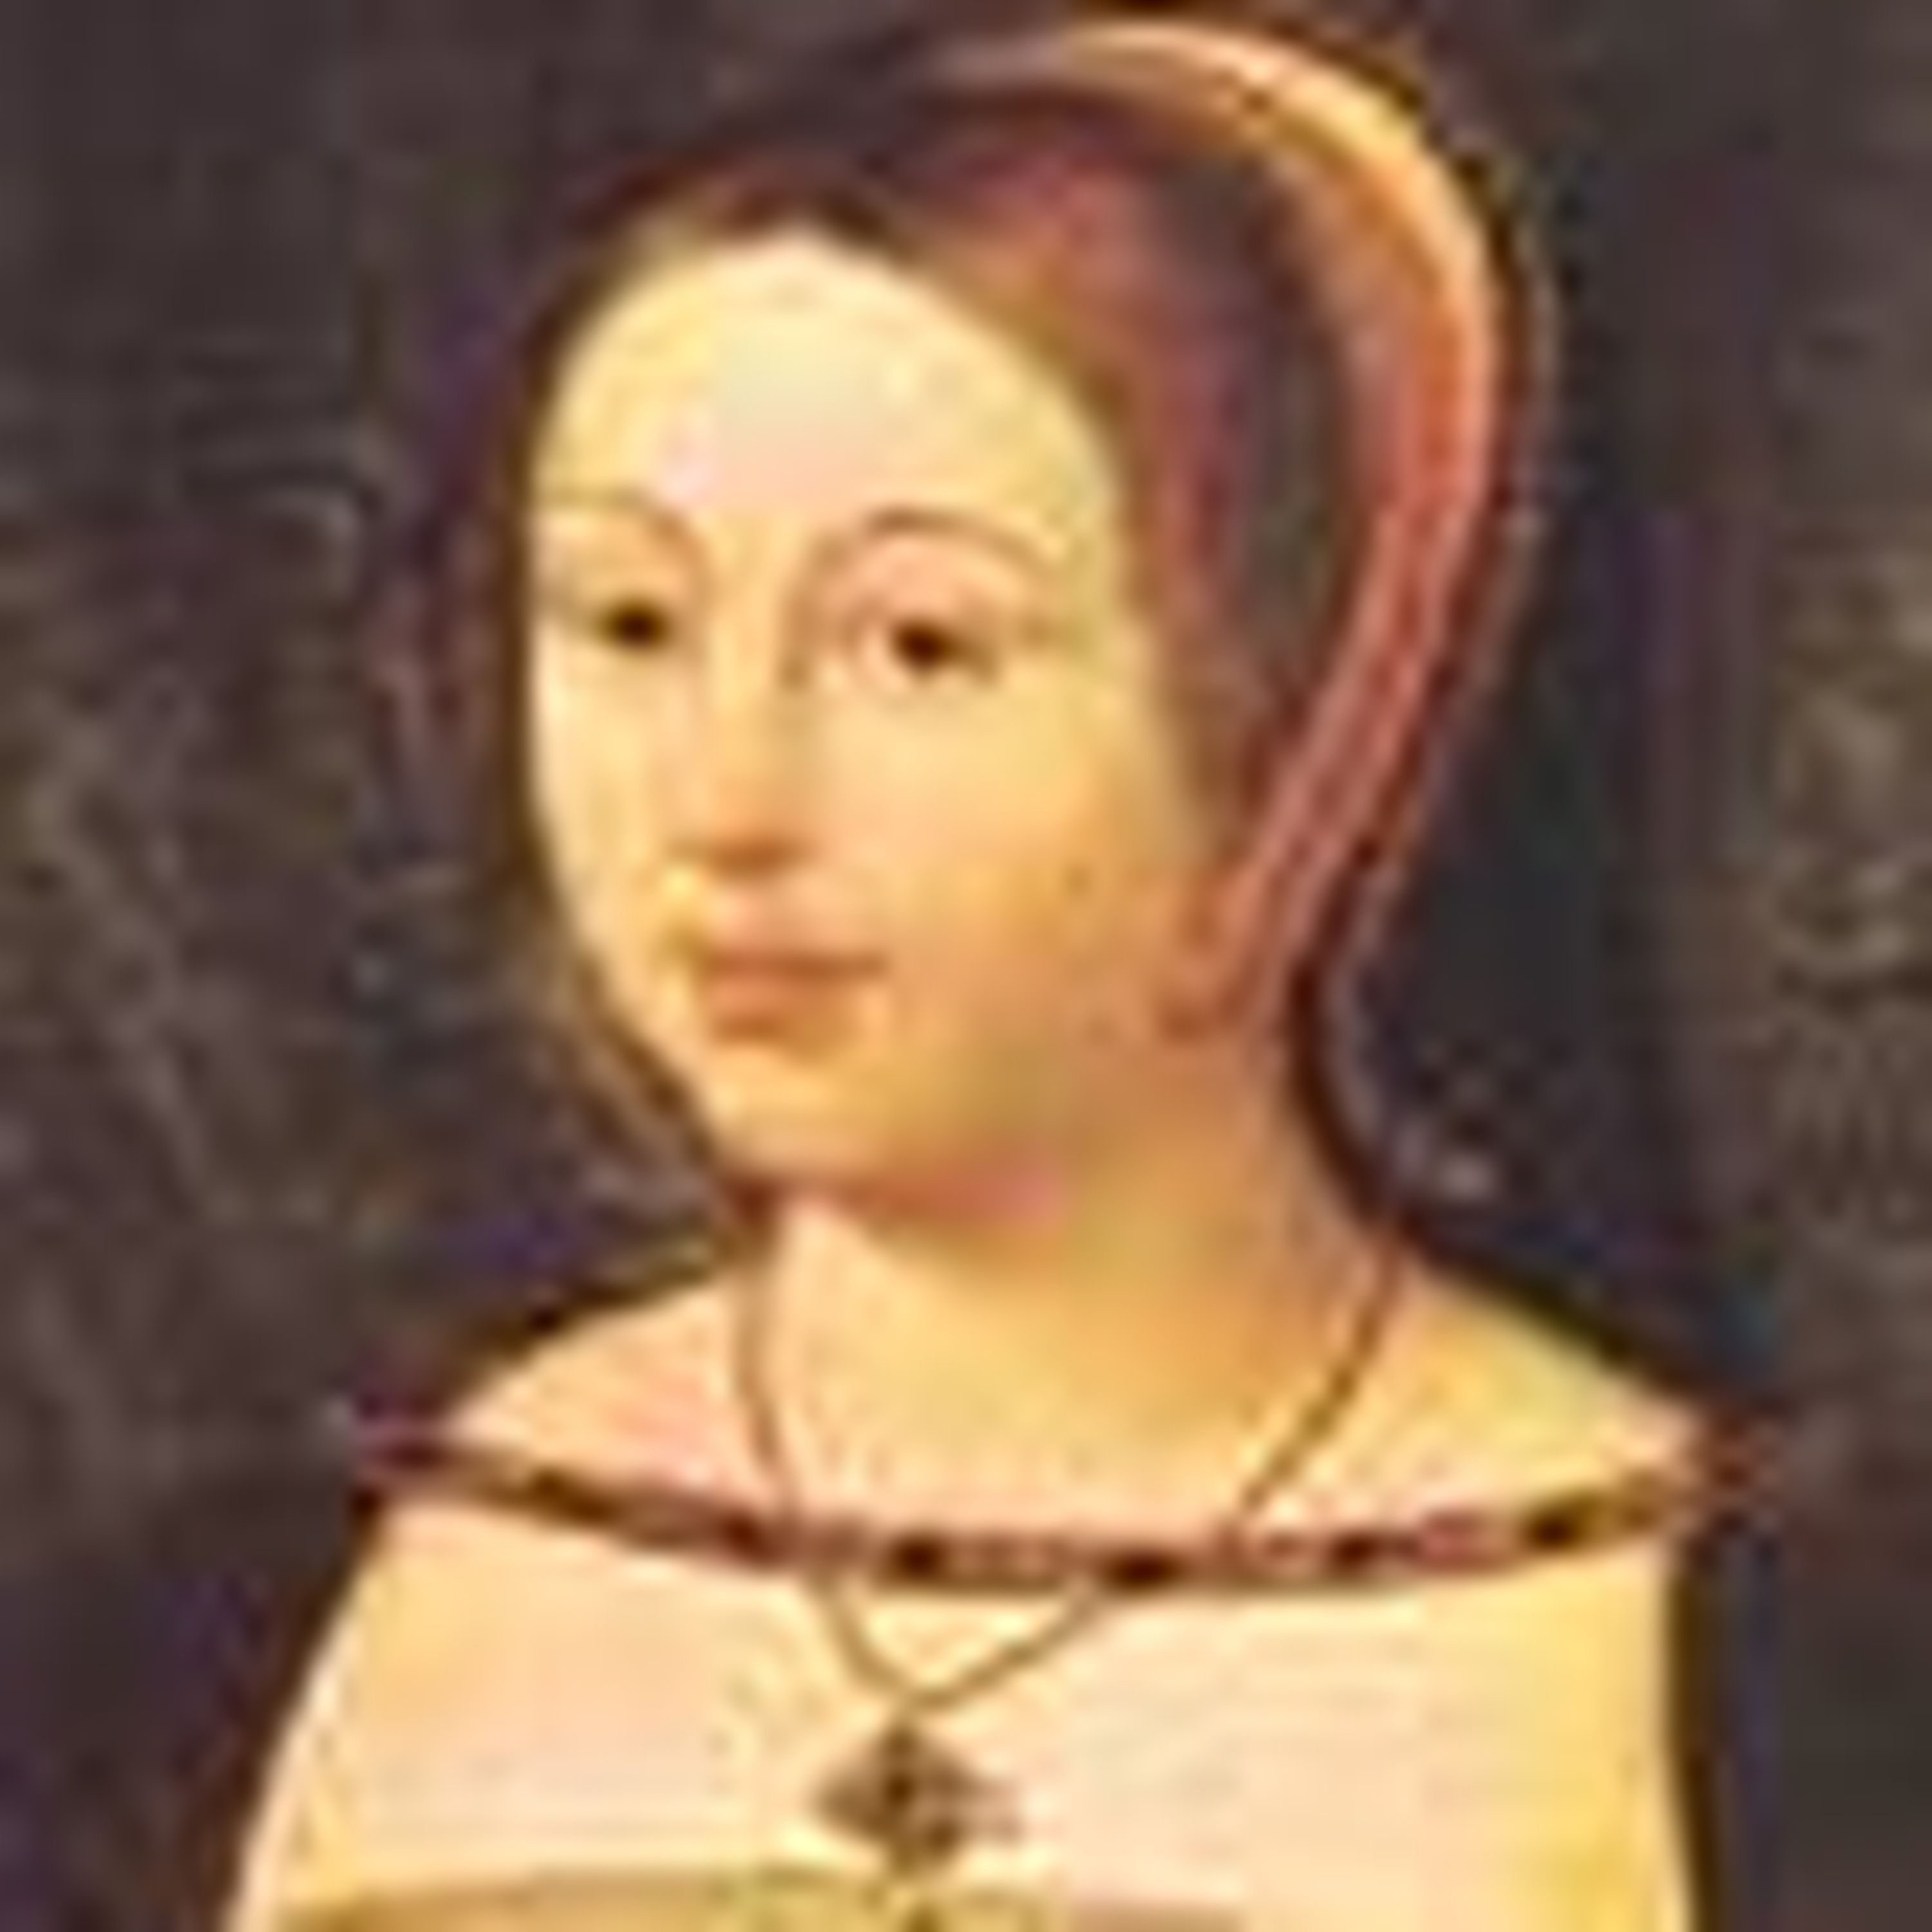 Episode 053: Tudor Times on Margaret Tudor